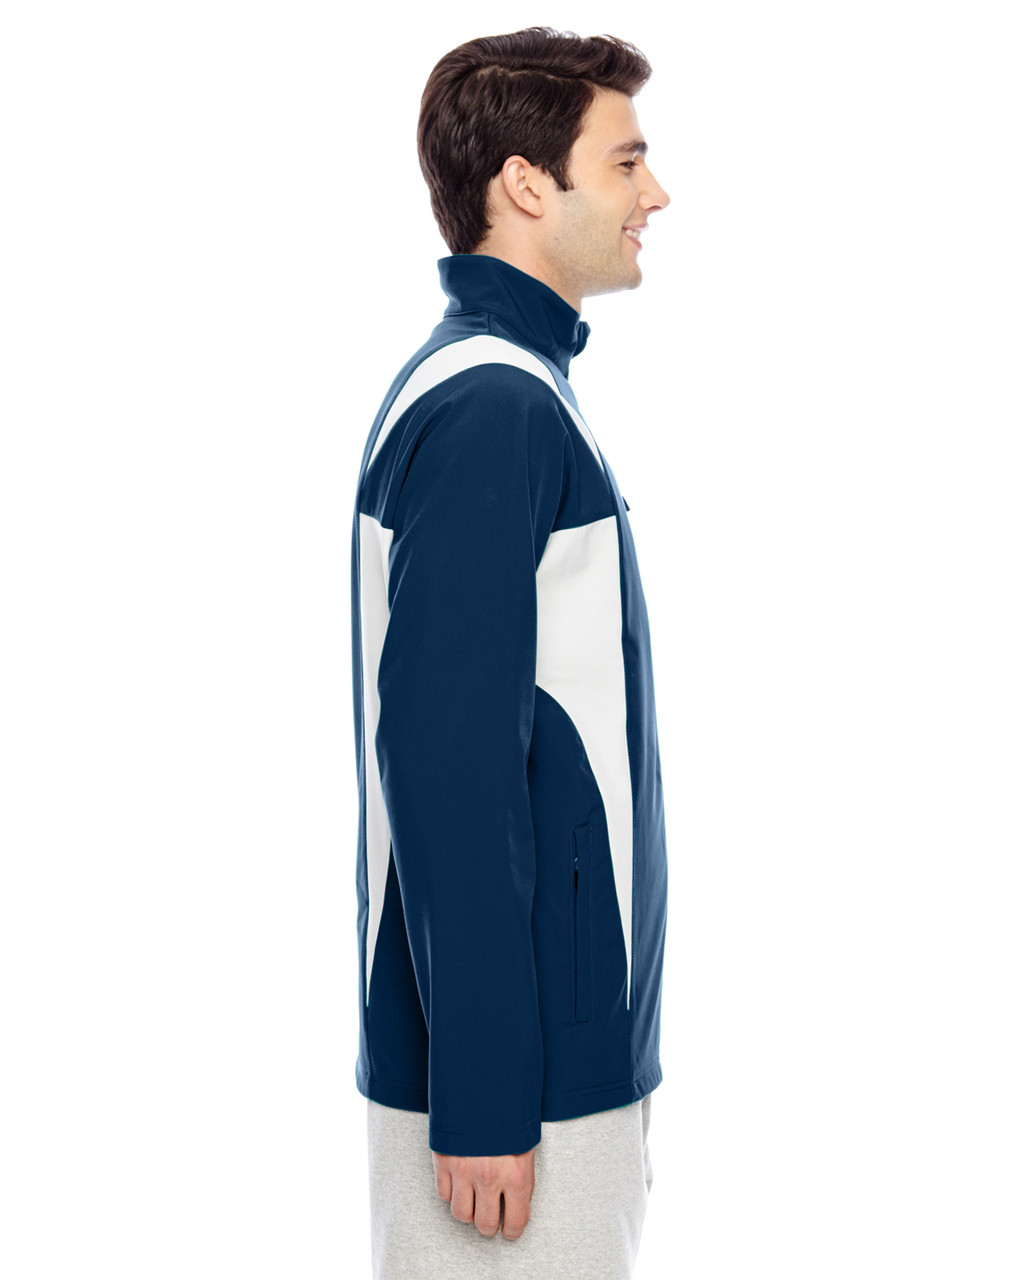 Sport Dark Navy/Sport Silver - Side, TT82 Team 365 Icon Colourblock Soft Shell Jacket  | BlankClothing.ca